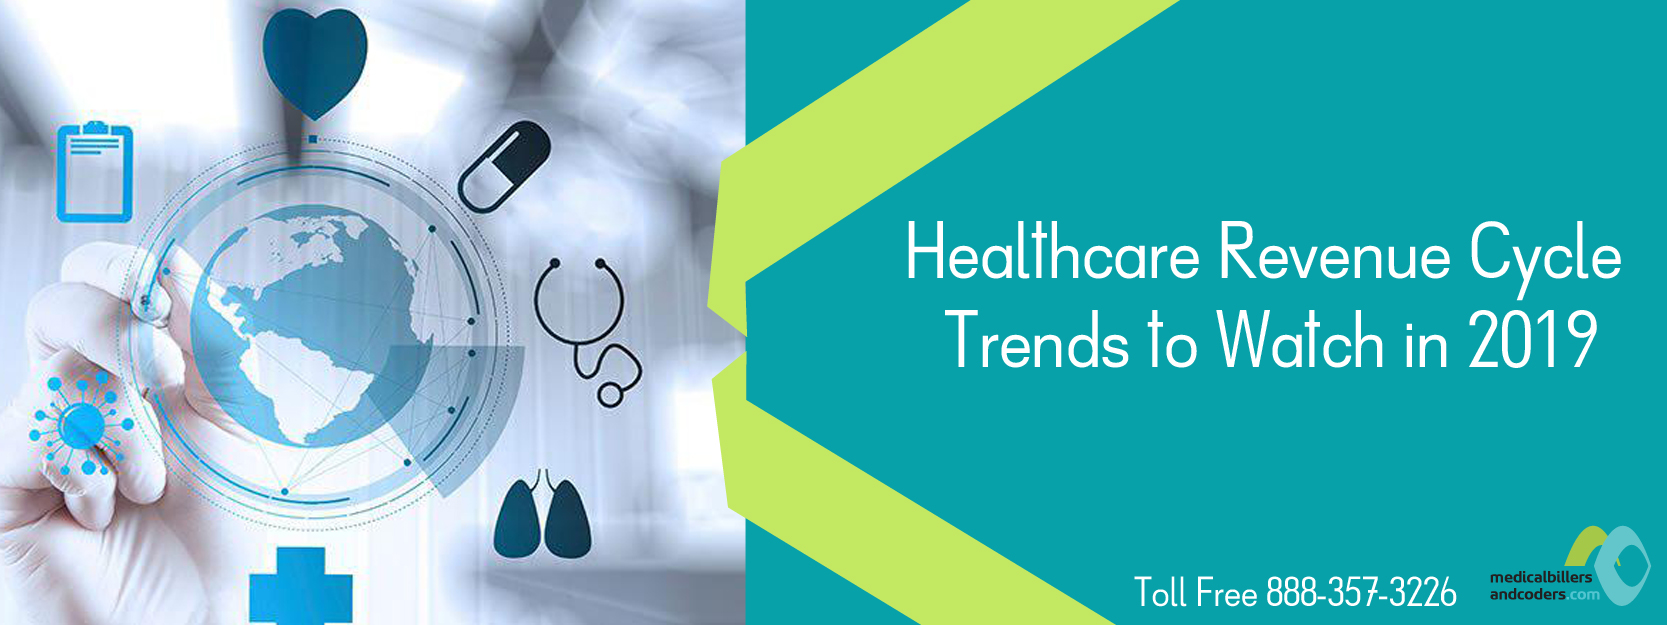 blog-healthcare-revenue-cycle-trends-to-watch-in-2019